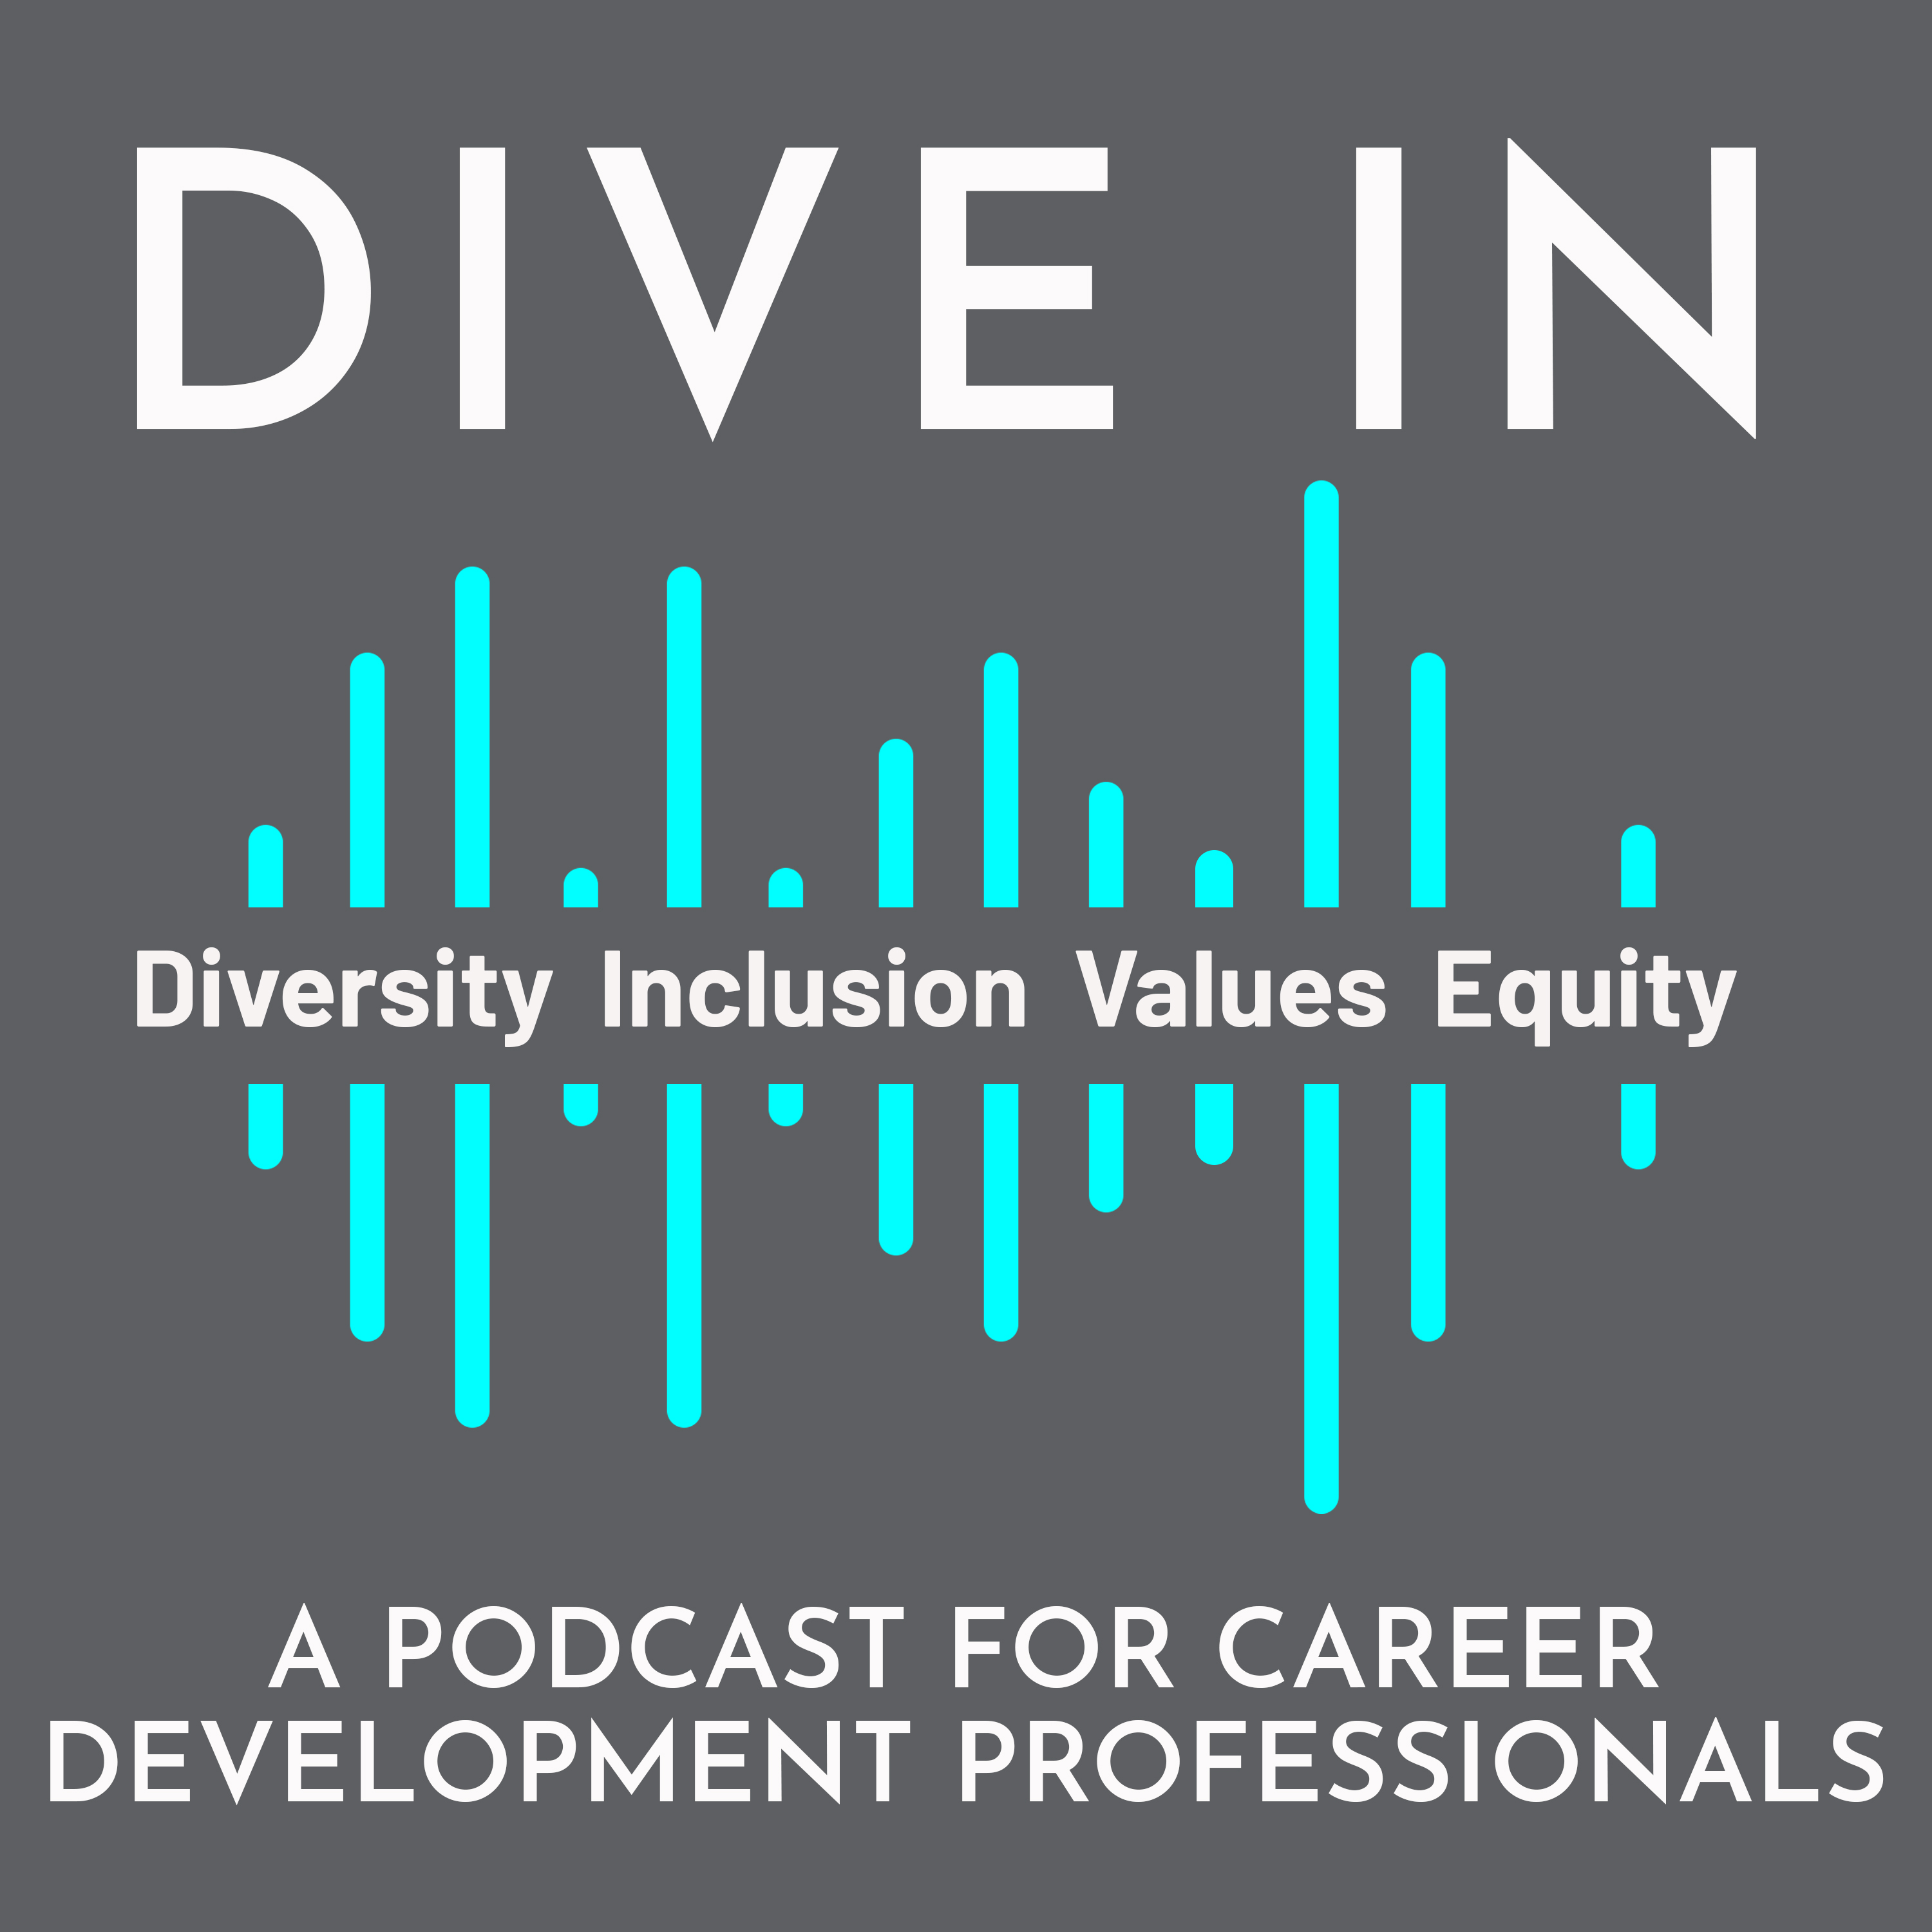 Dive In: A Podcast for Career Development Professionals show art